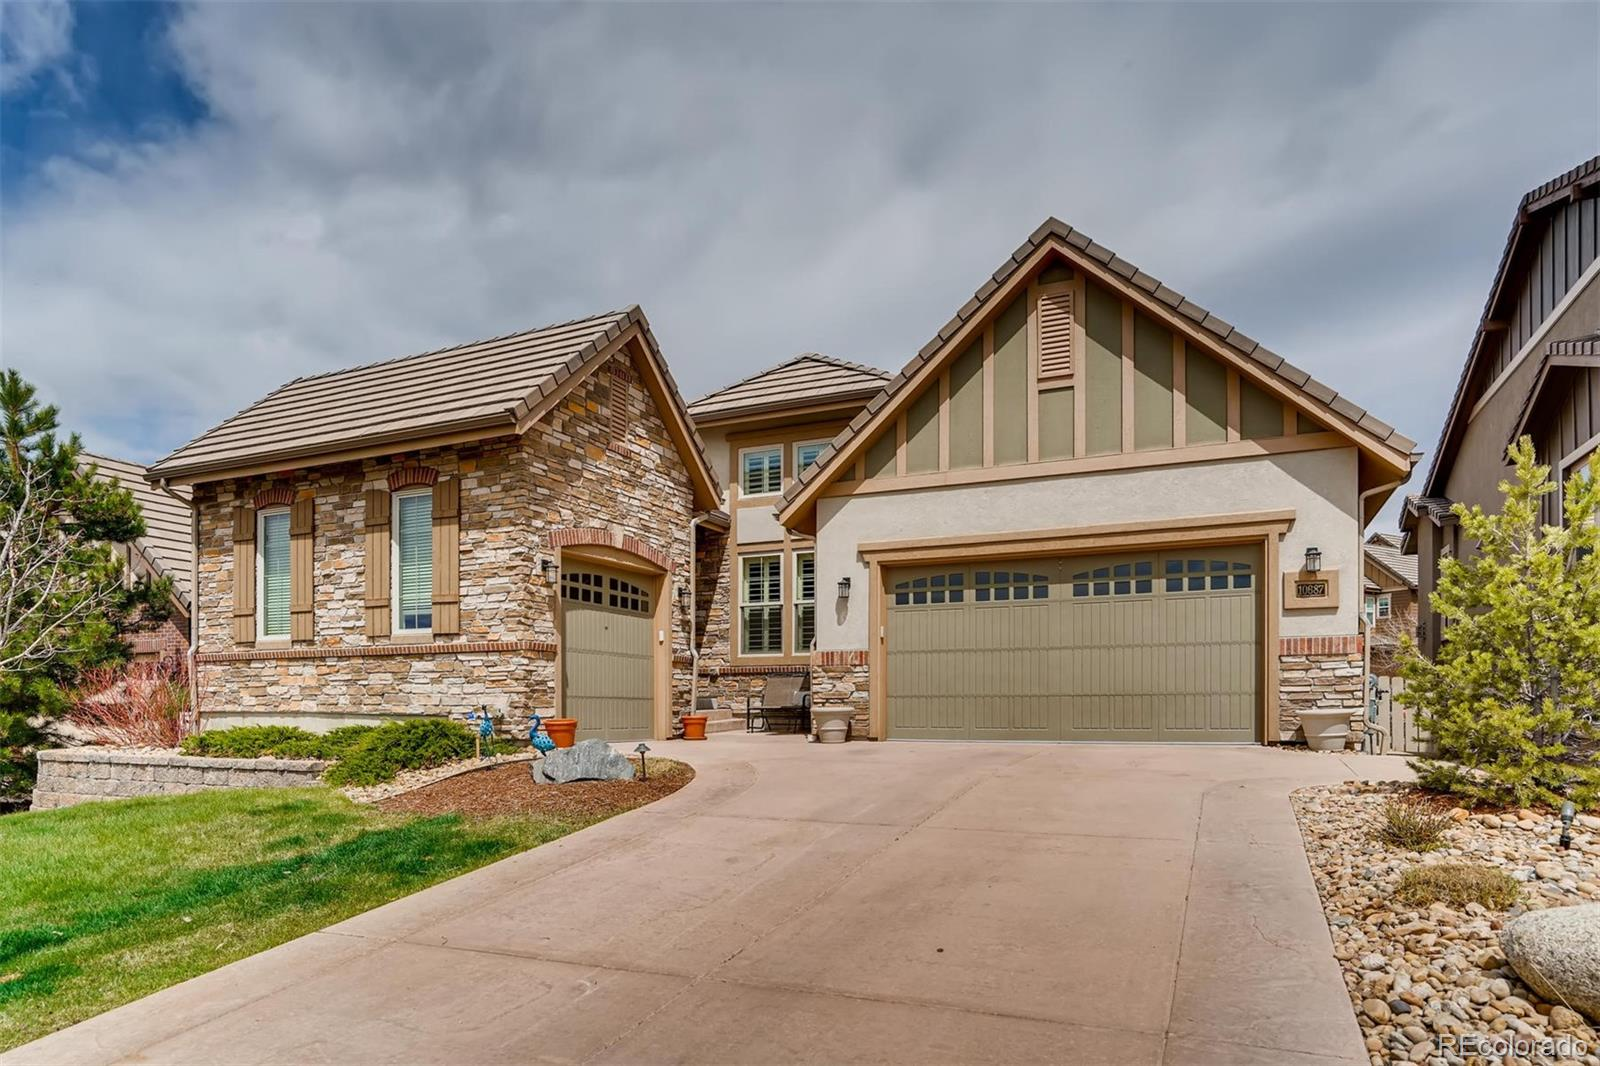 10687 Featherwalk Way, Highlands Ranch, CO 80126 - Highlands Ranch, CO real estate listing